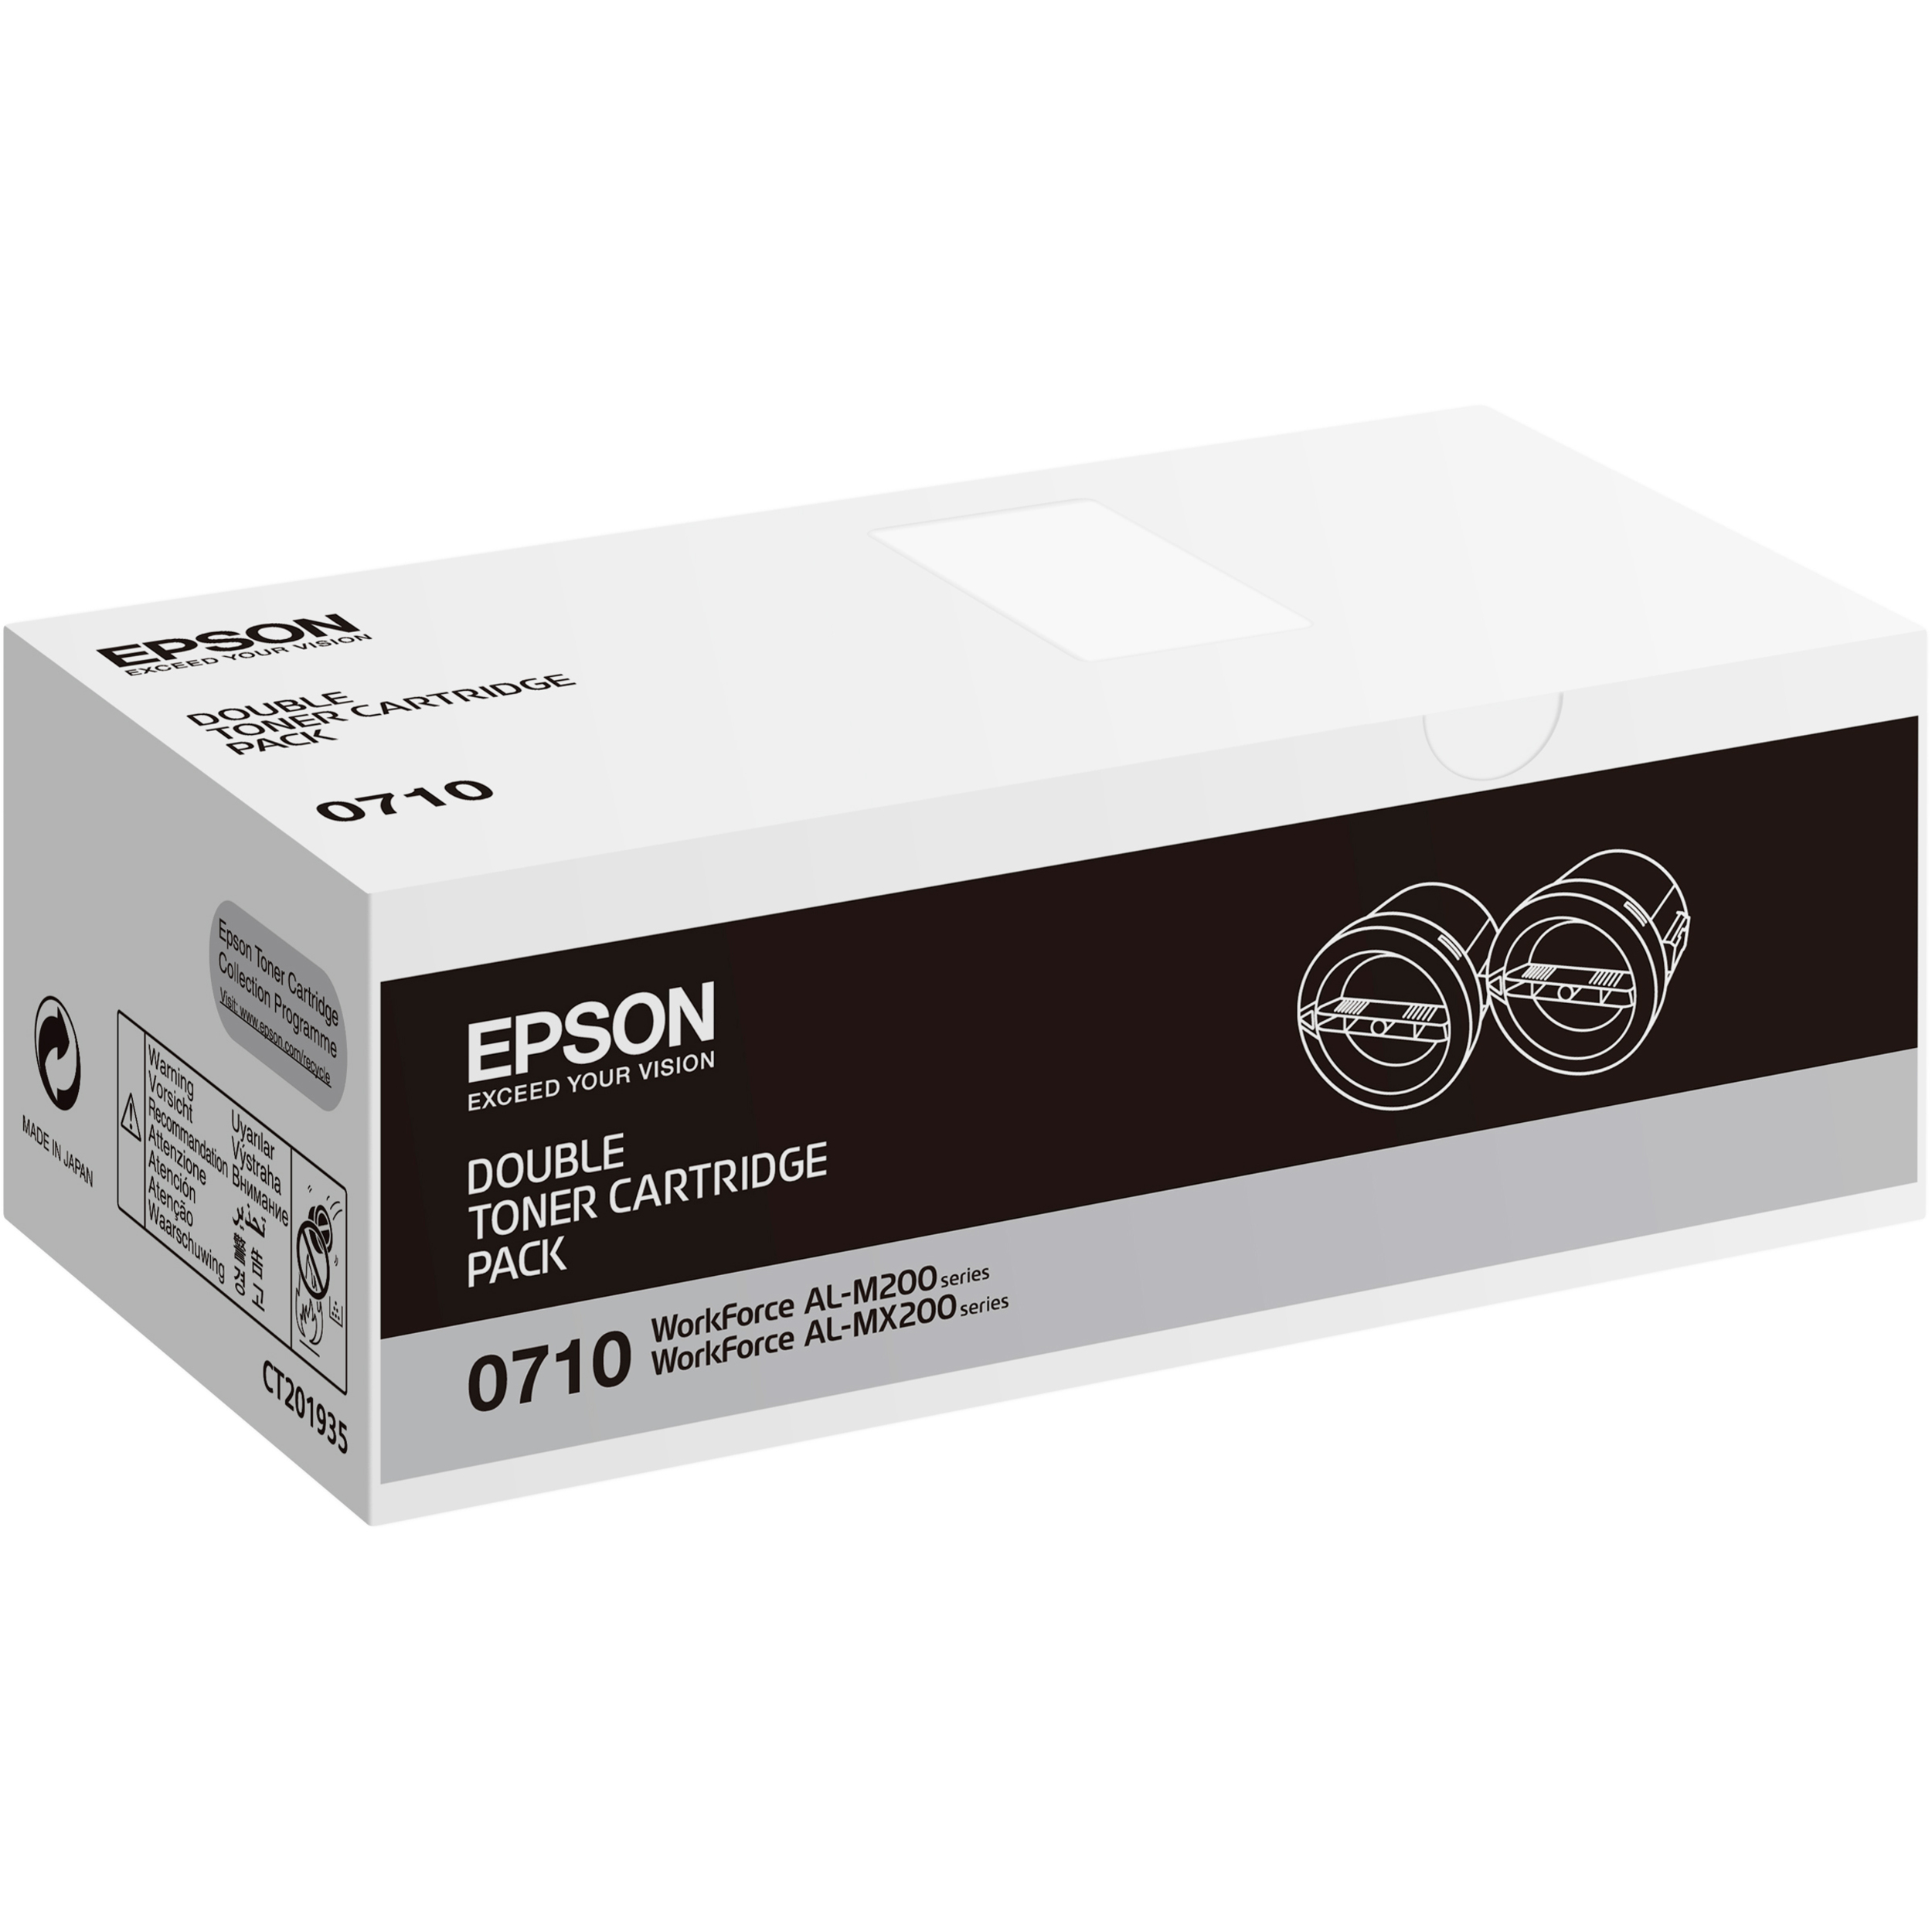 Epson Toner Cartridge